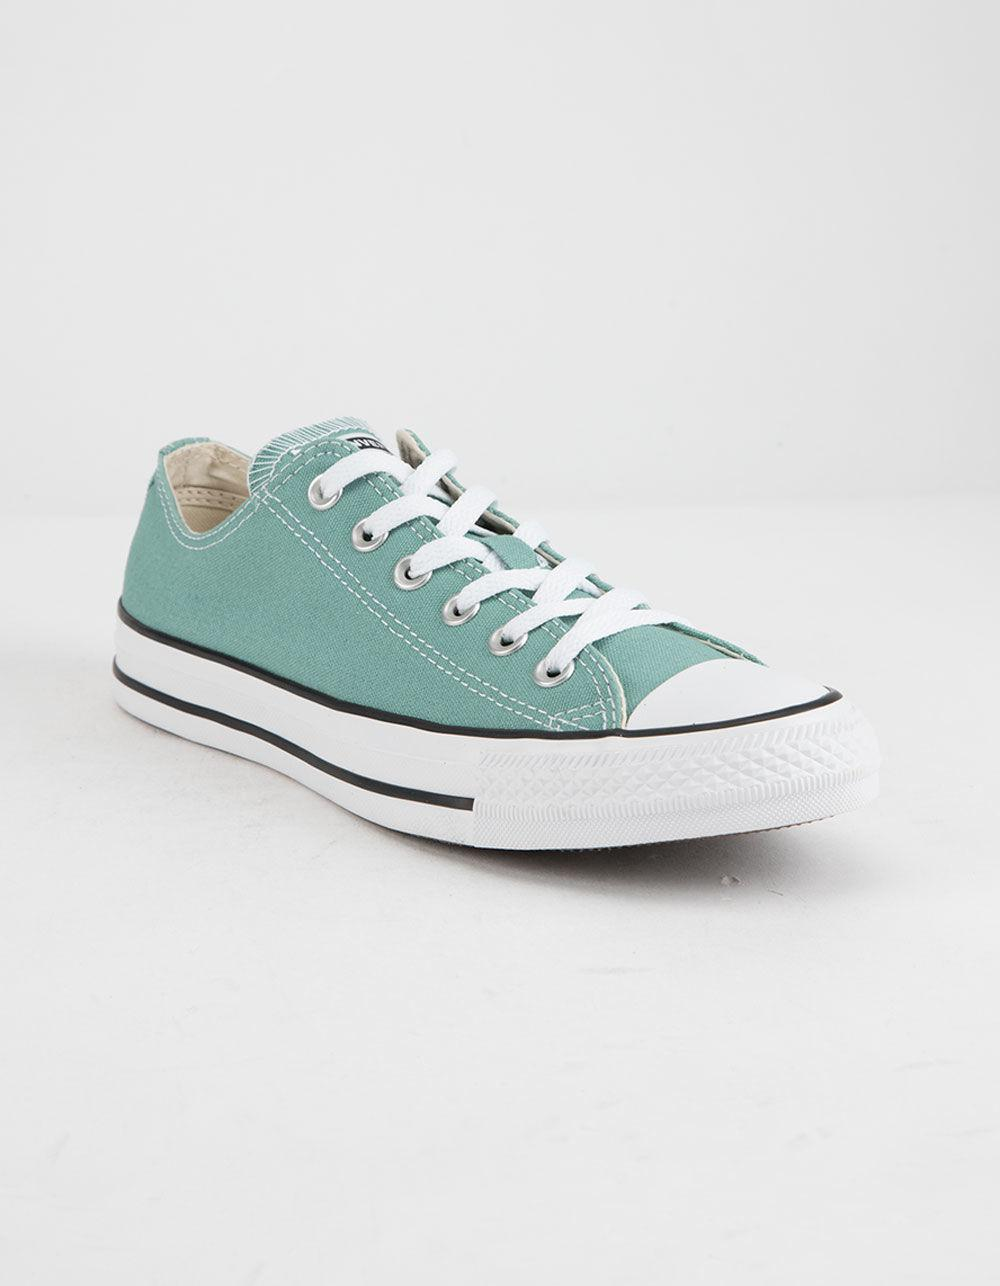 Lyst - Converse Chuck Taylor All Star Mineral Teal Low Top Womens Shoes in  Blue e1843fc6c